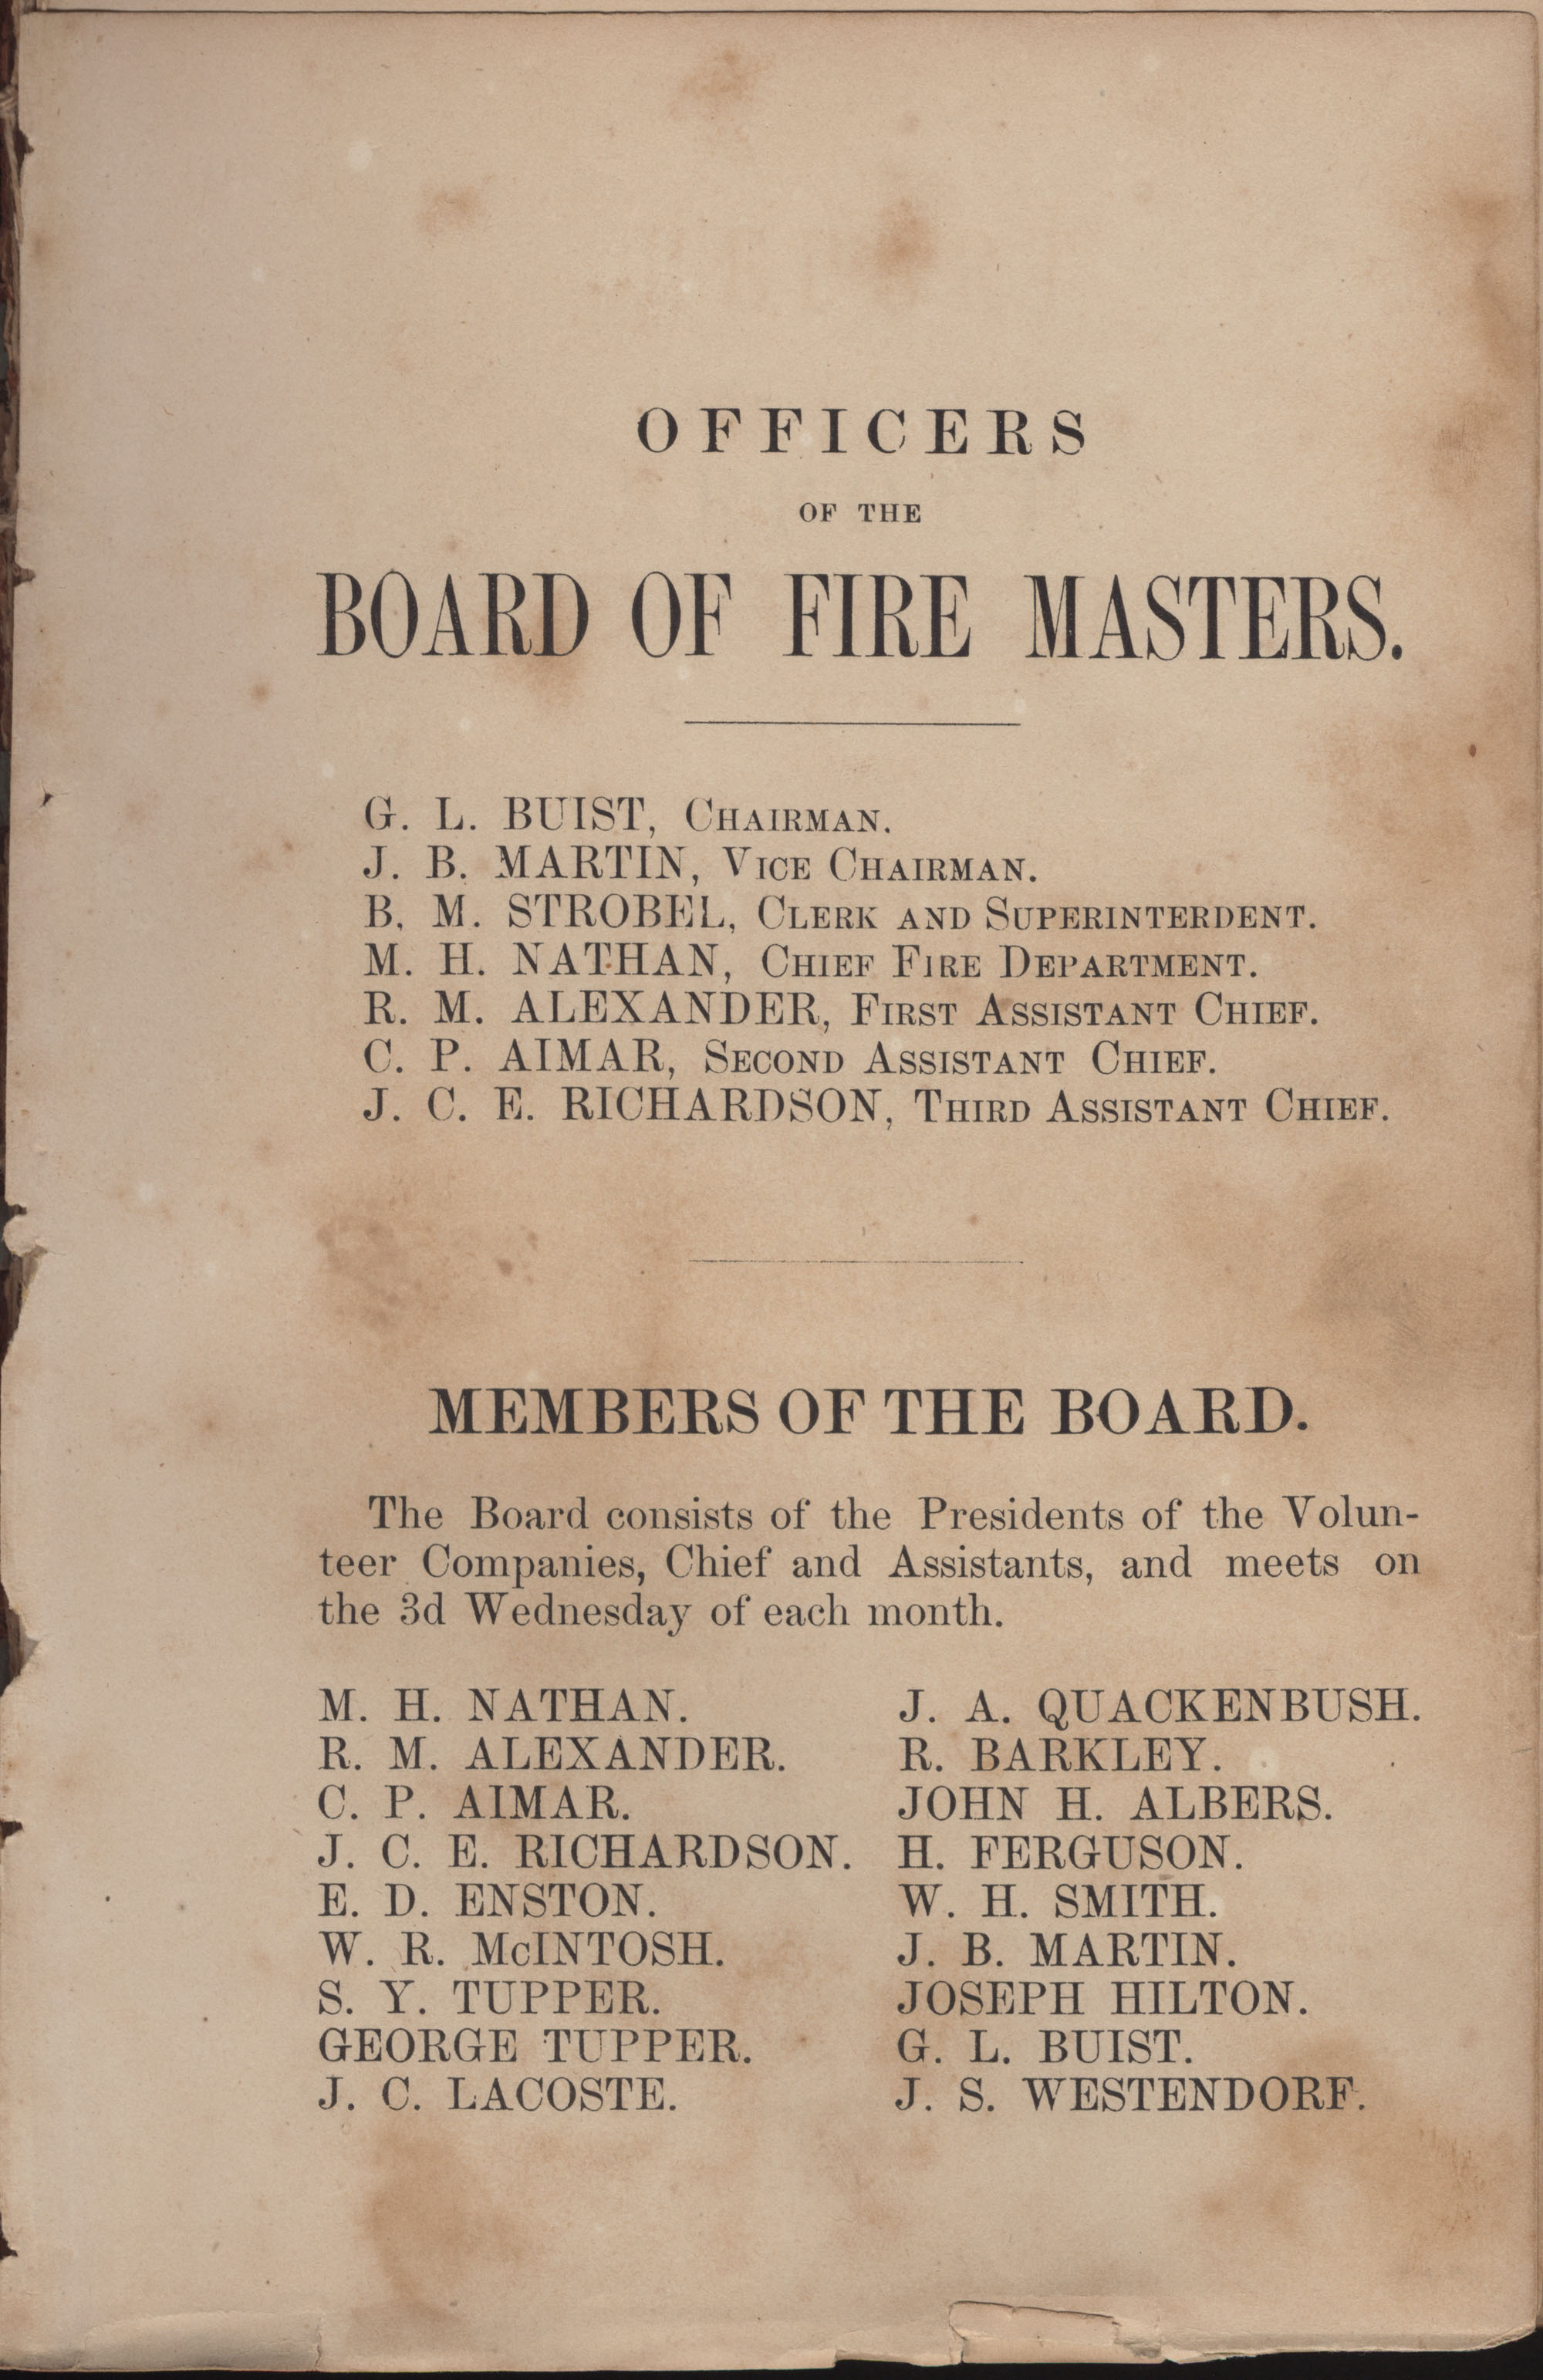 Annual Report of the Chief of the Fire Department of the City of Charleston, page 182